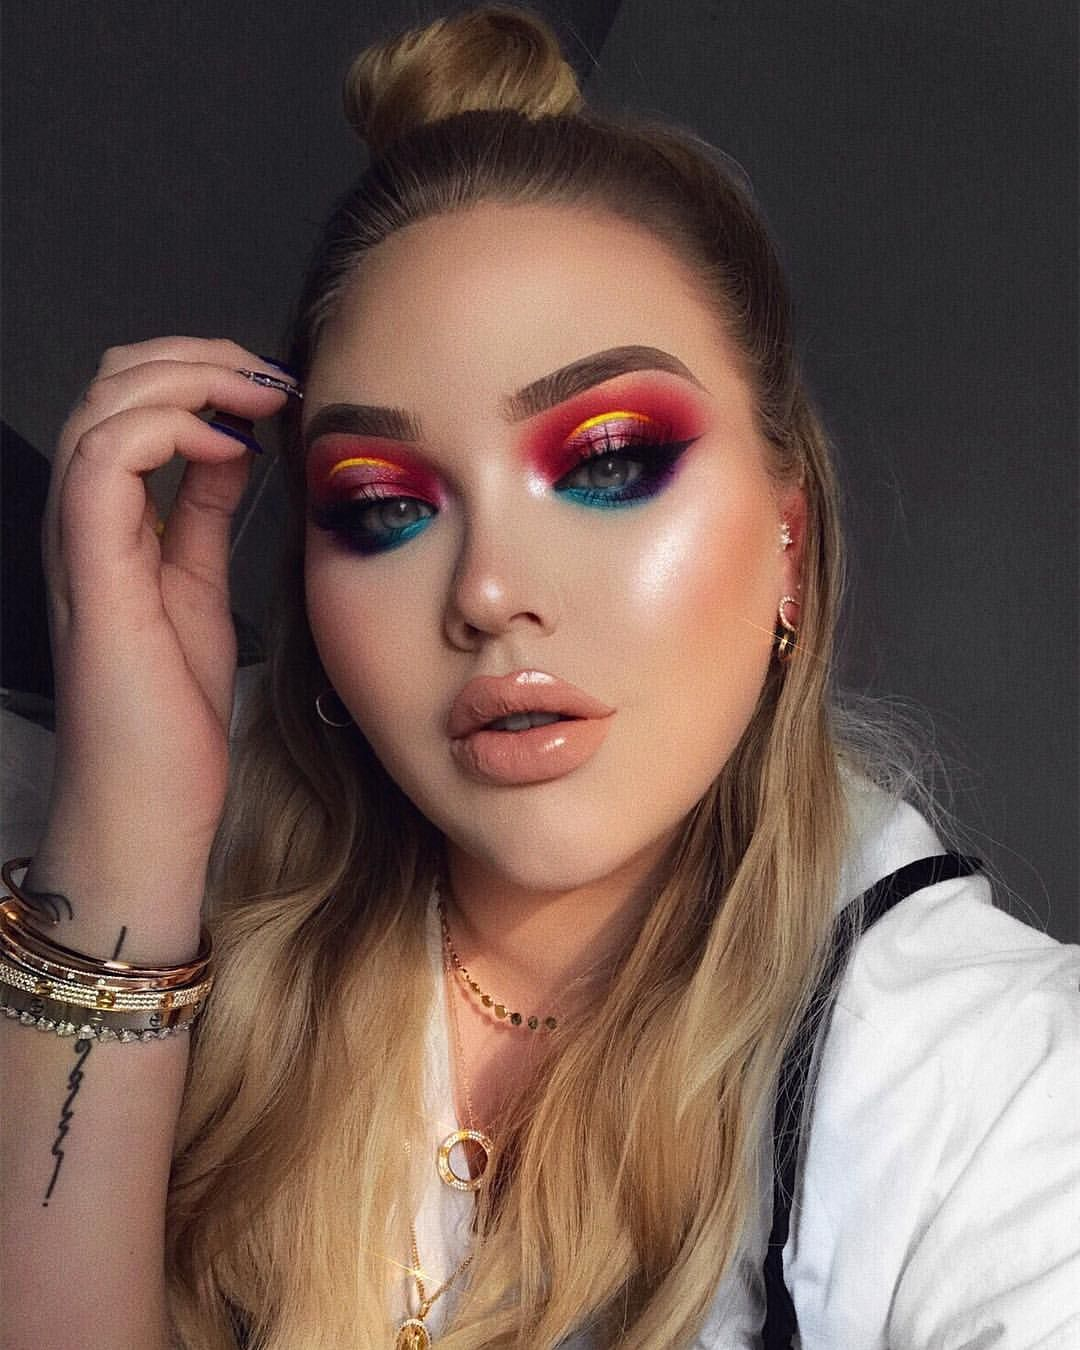 Pin By Brooklyn Brown On Like A Boss In 2019 Make Up